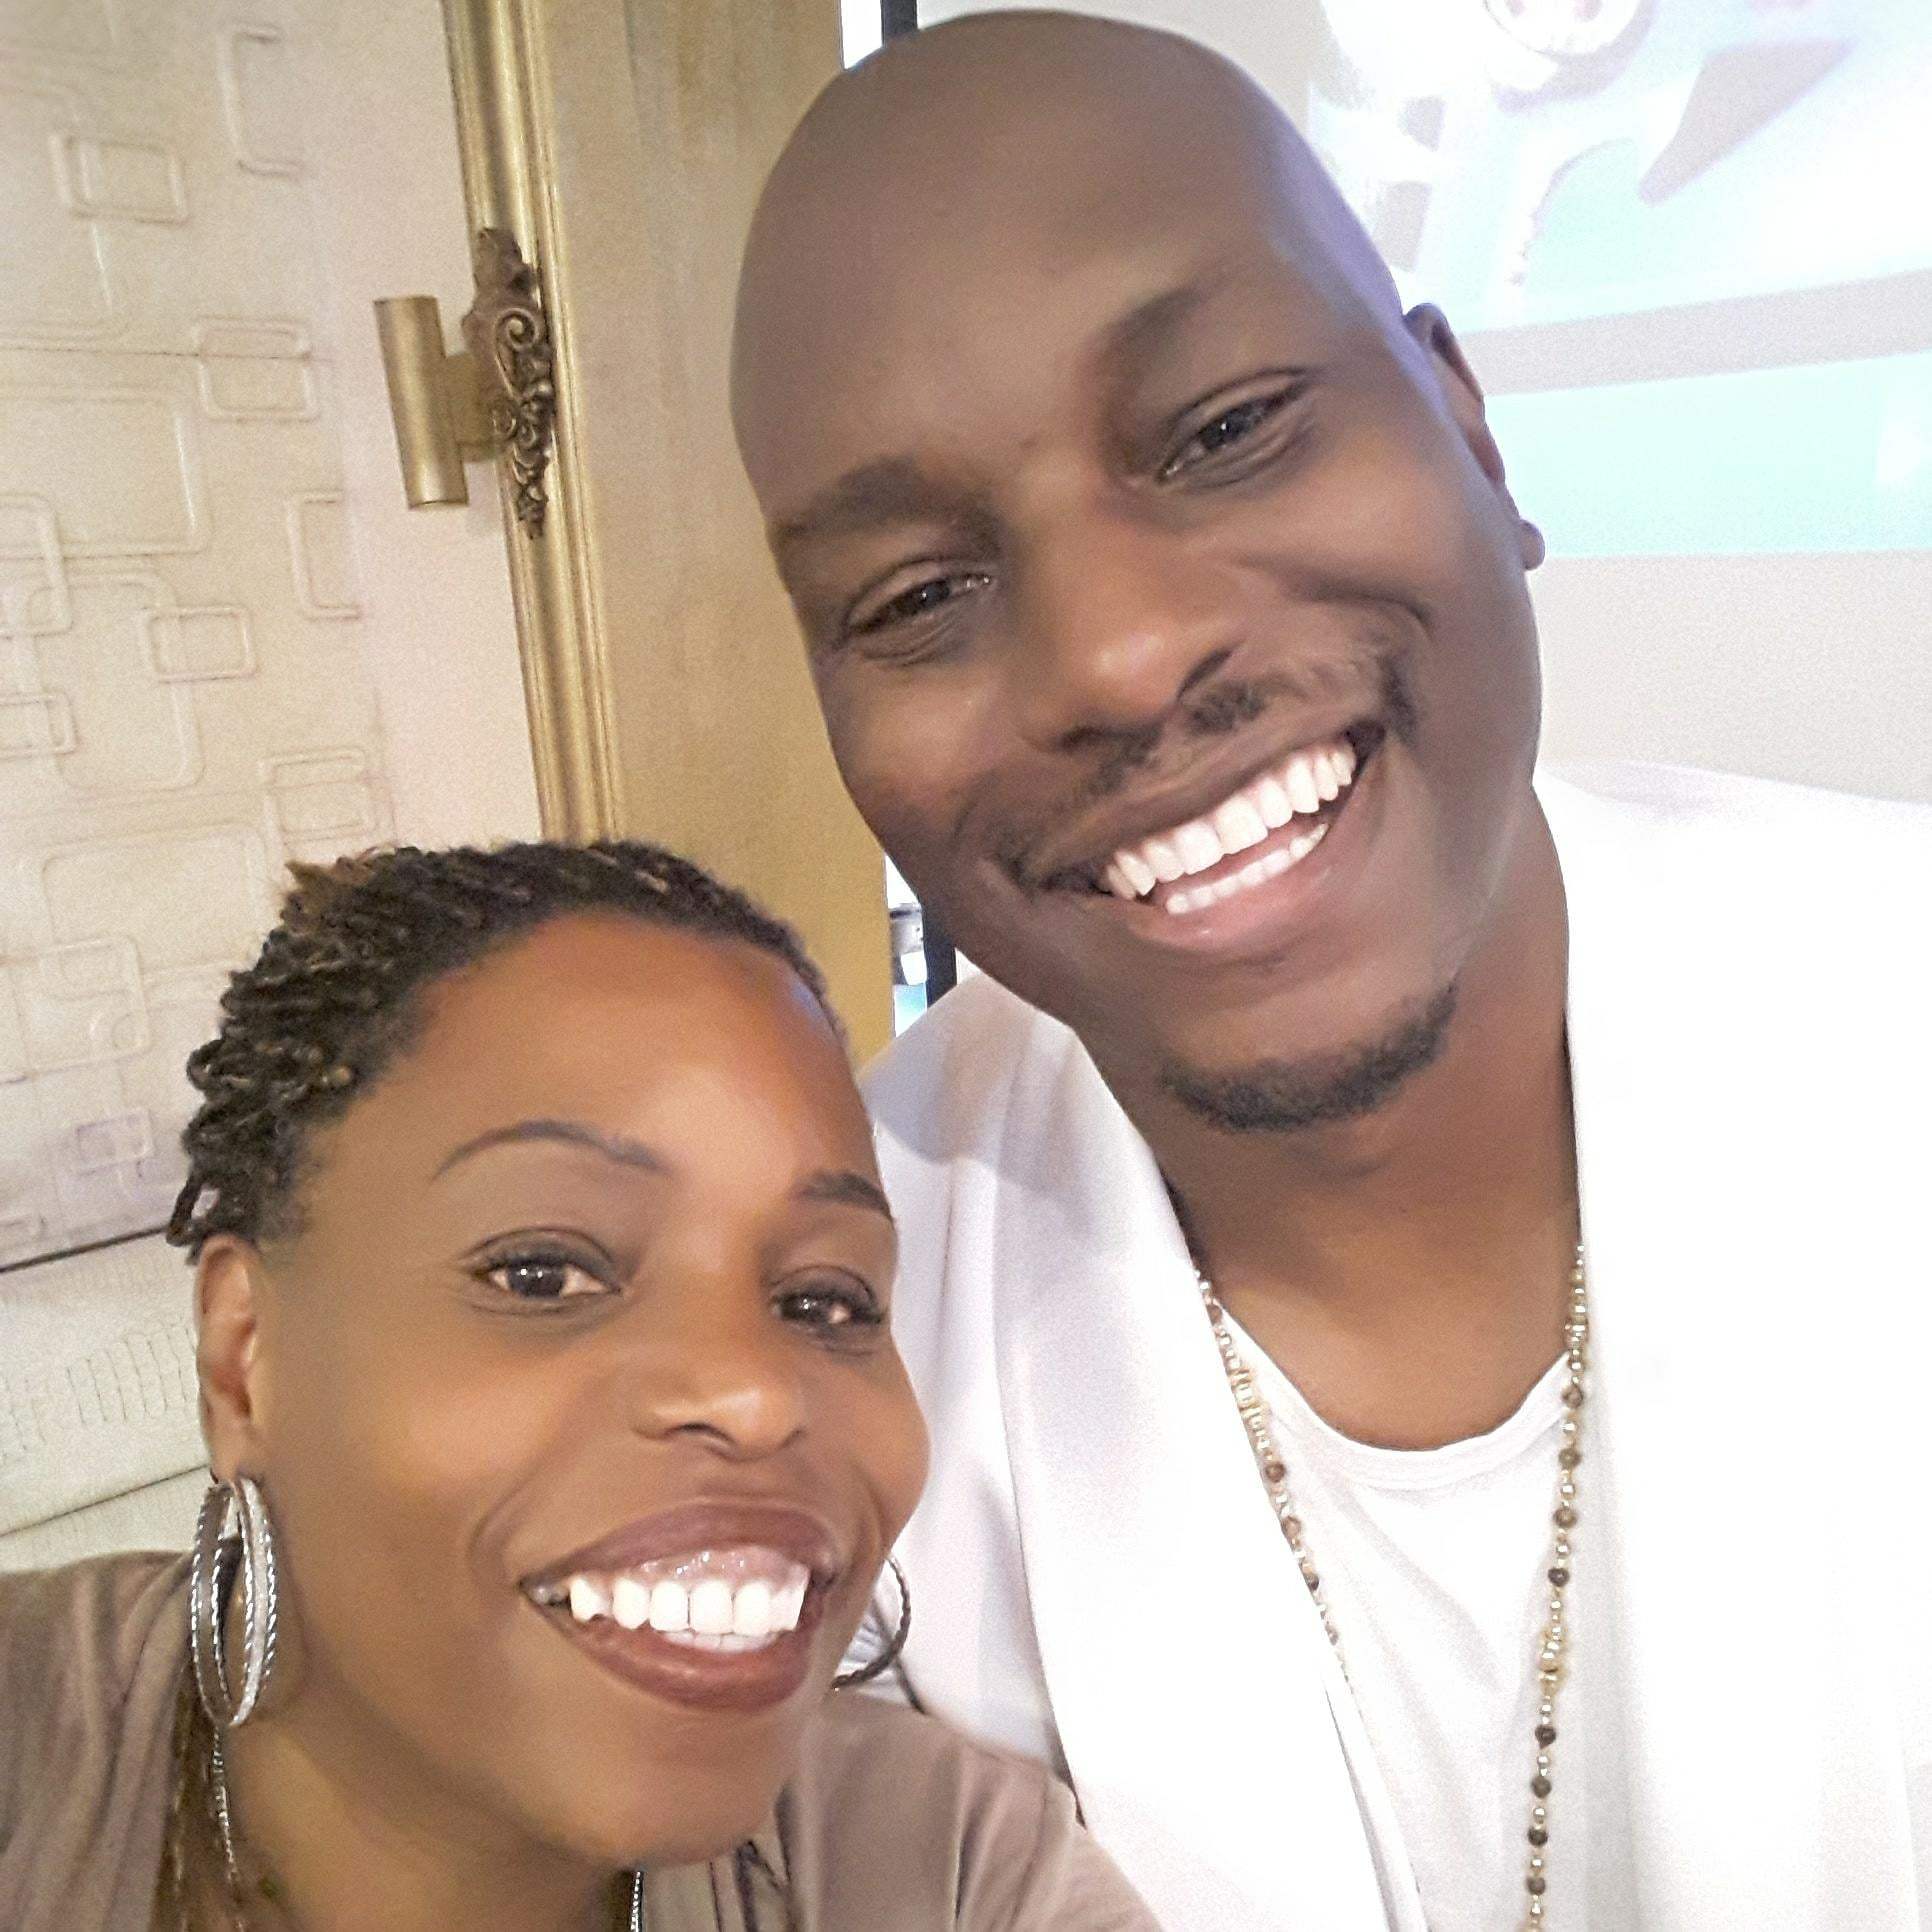 Vice PresidentFaces of Rap Mothers Television NetworkQueen G Tyrese Gibson